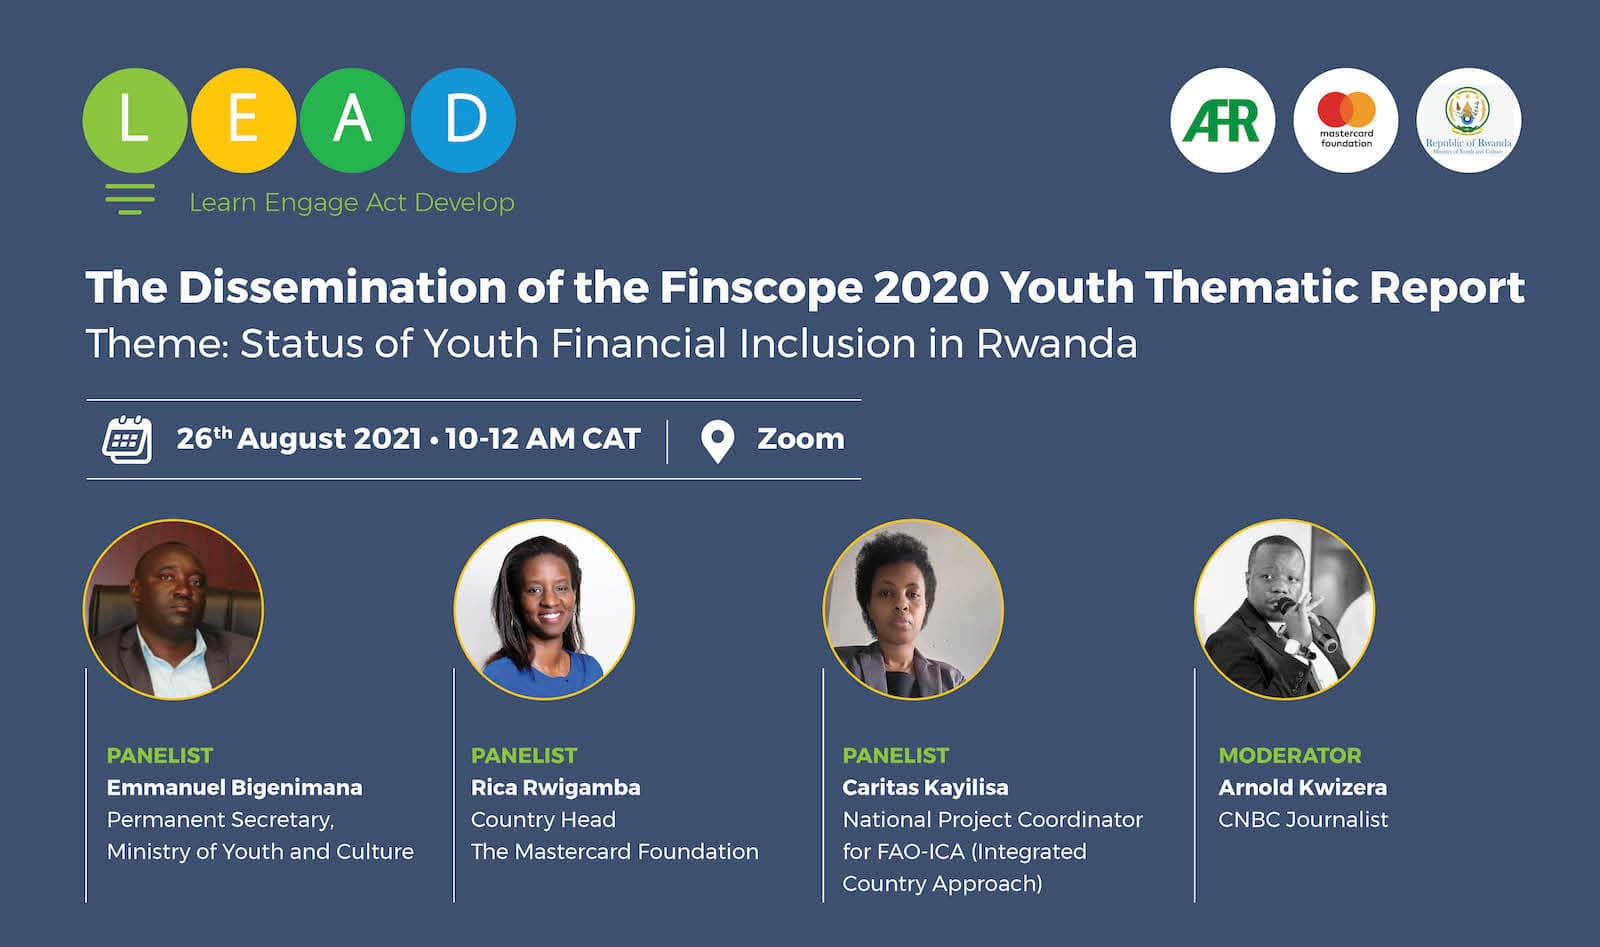 AFR LEAD Series: Dissemination of  the Finscope 2020 Youth thematic report